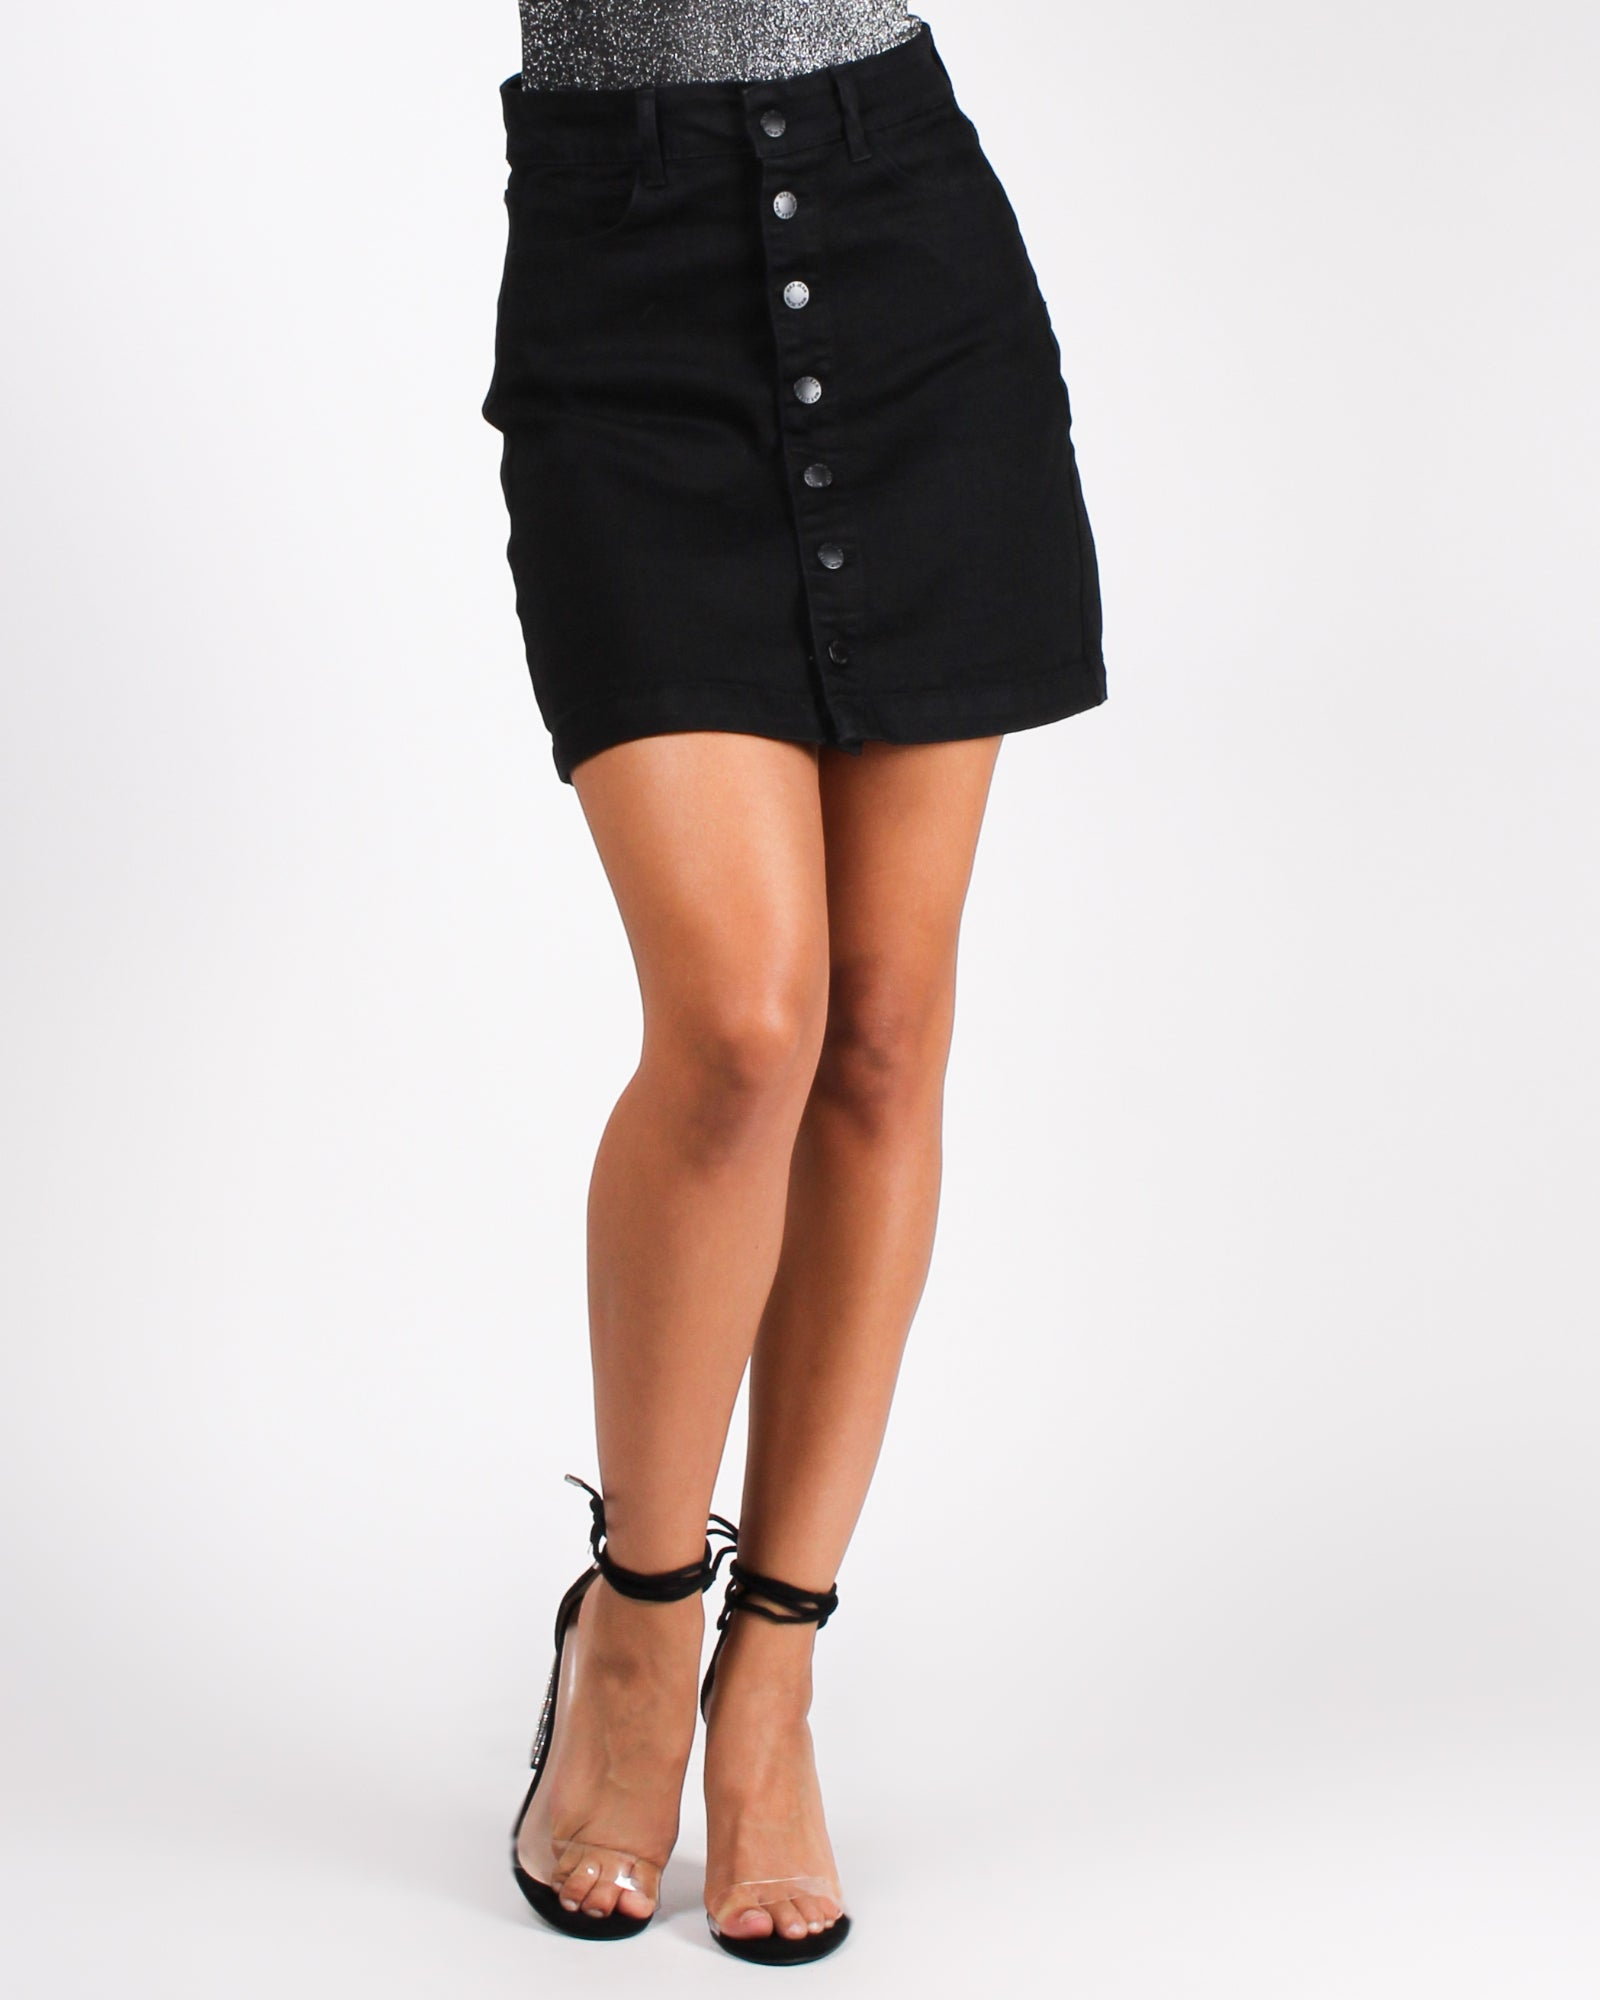 Veni, Vidi, Amavi Denim Skirt (Black)